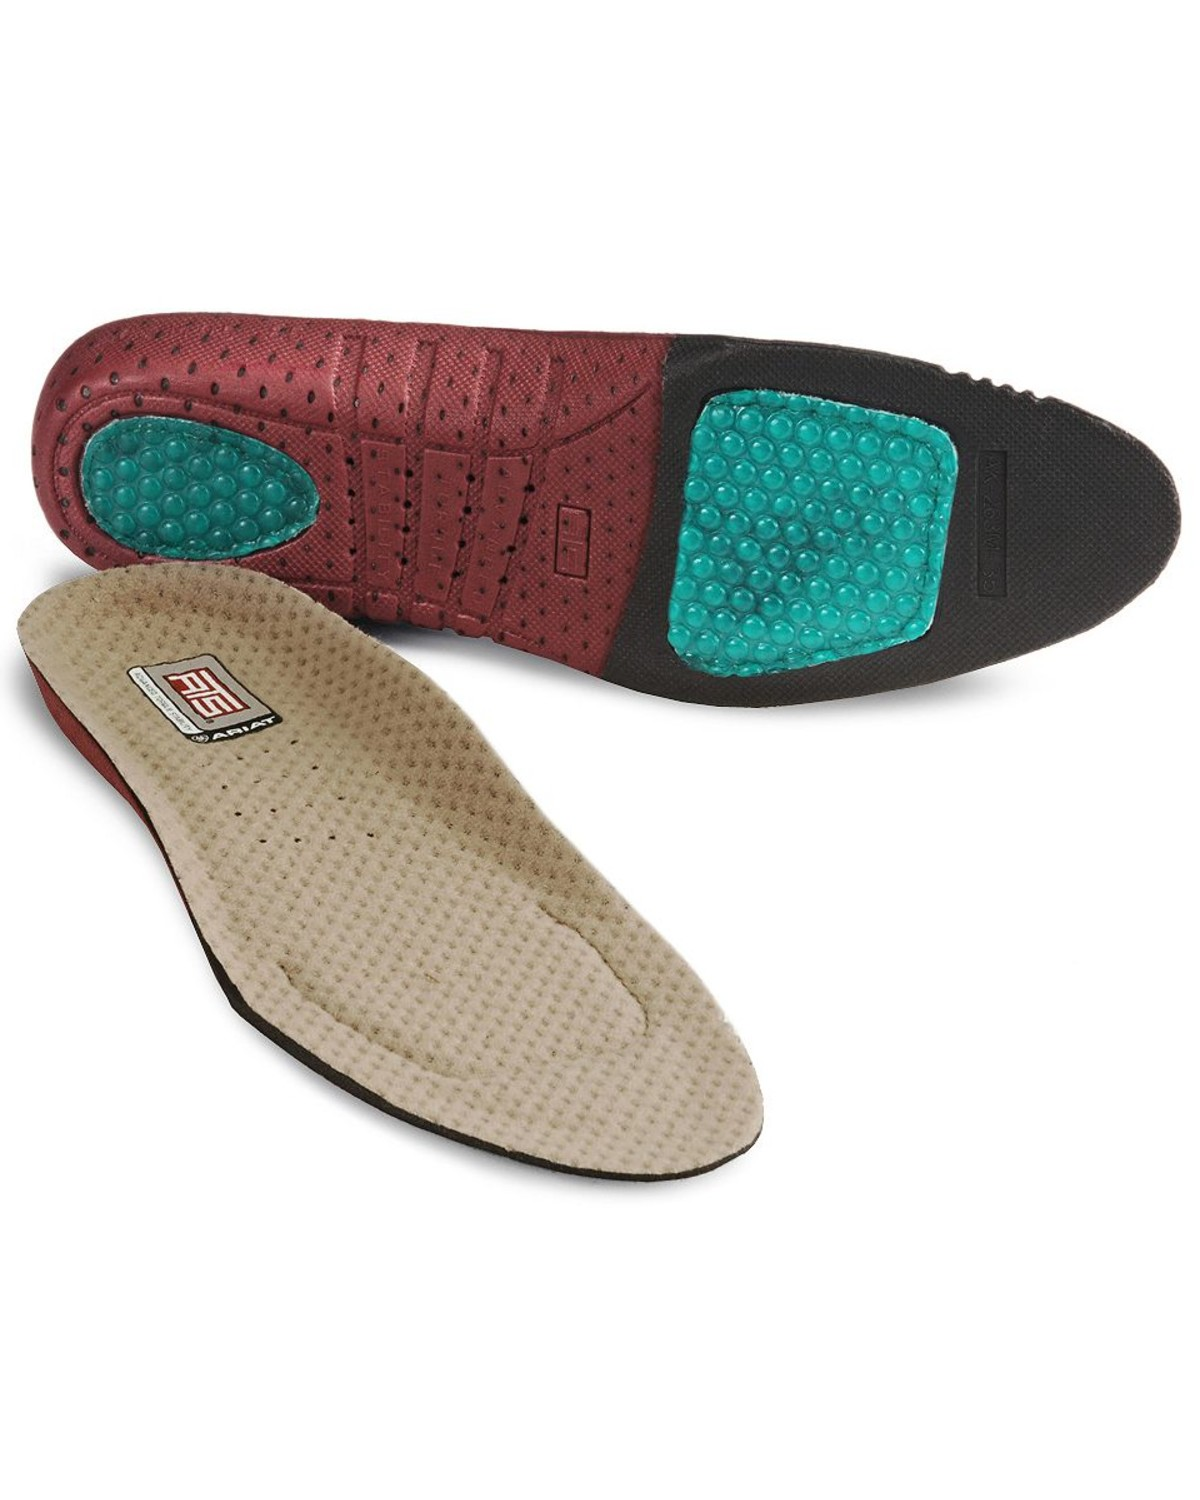 Ariat Women/'s ATS Round Toe Footbed Insole Choose Size